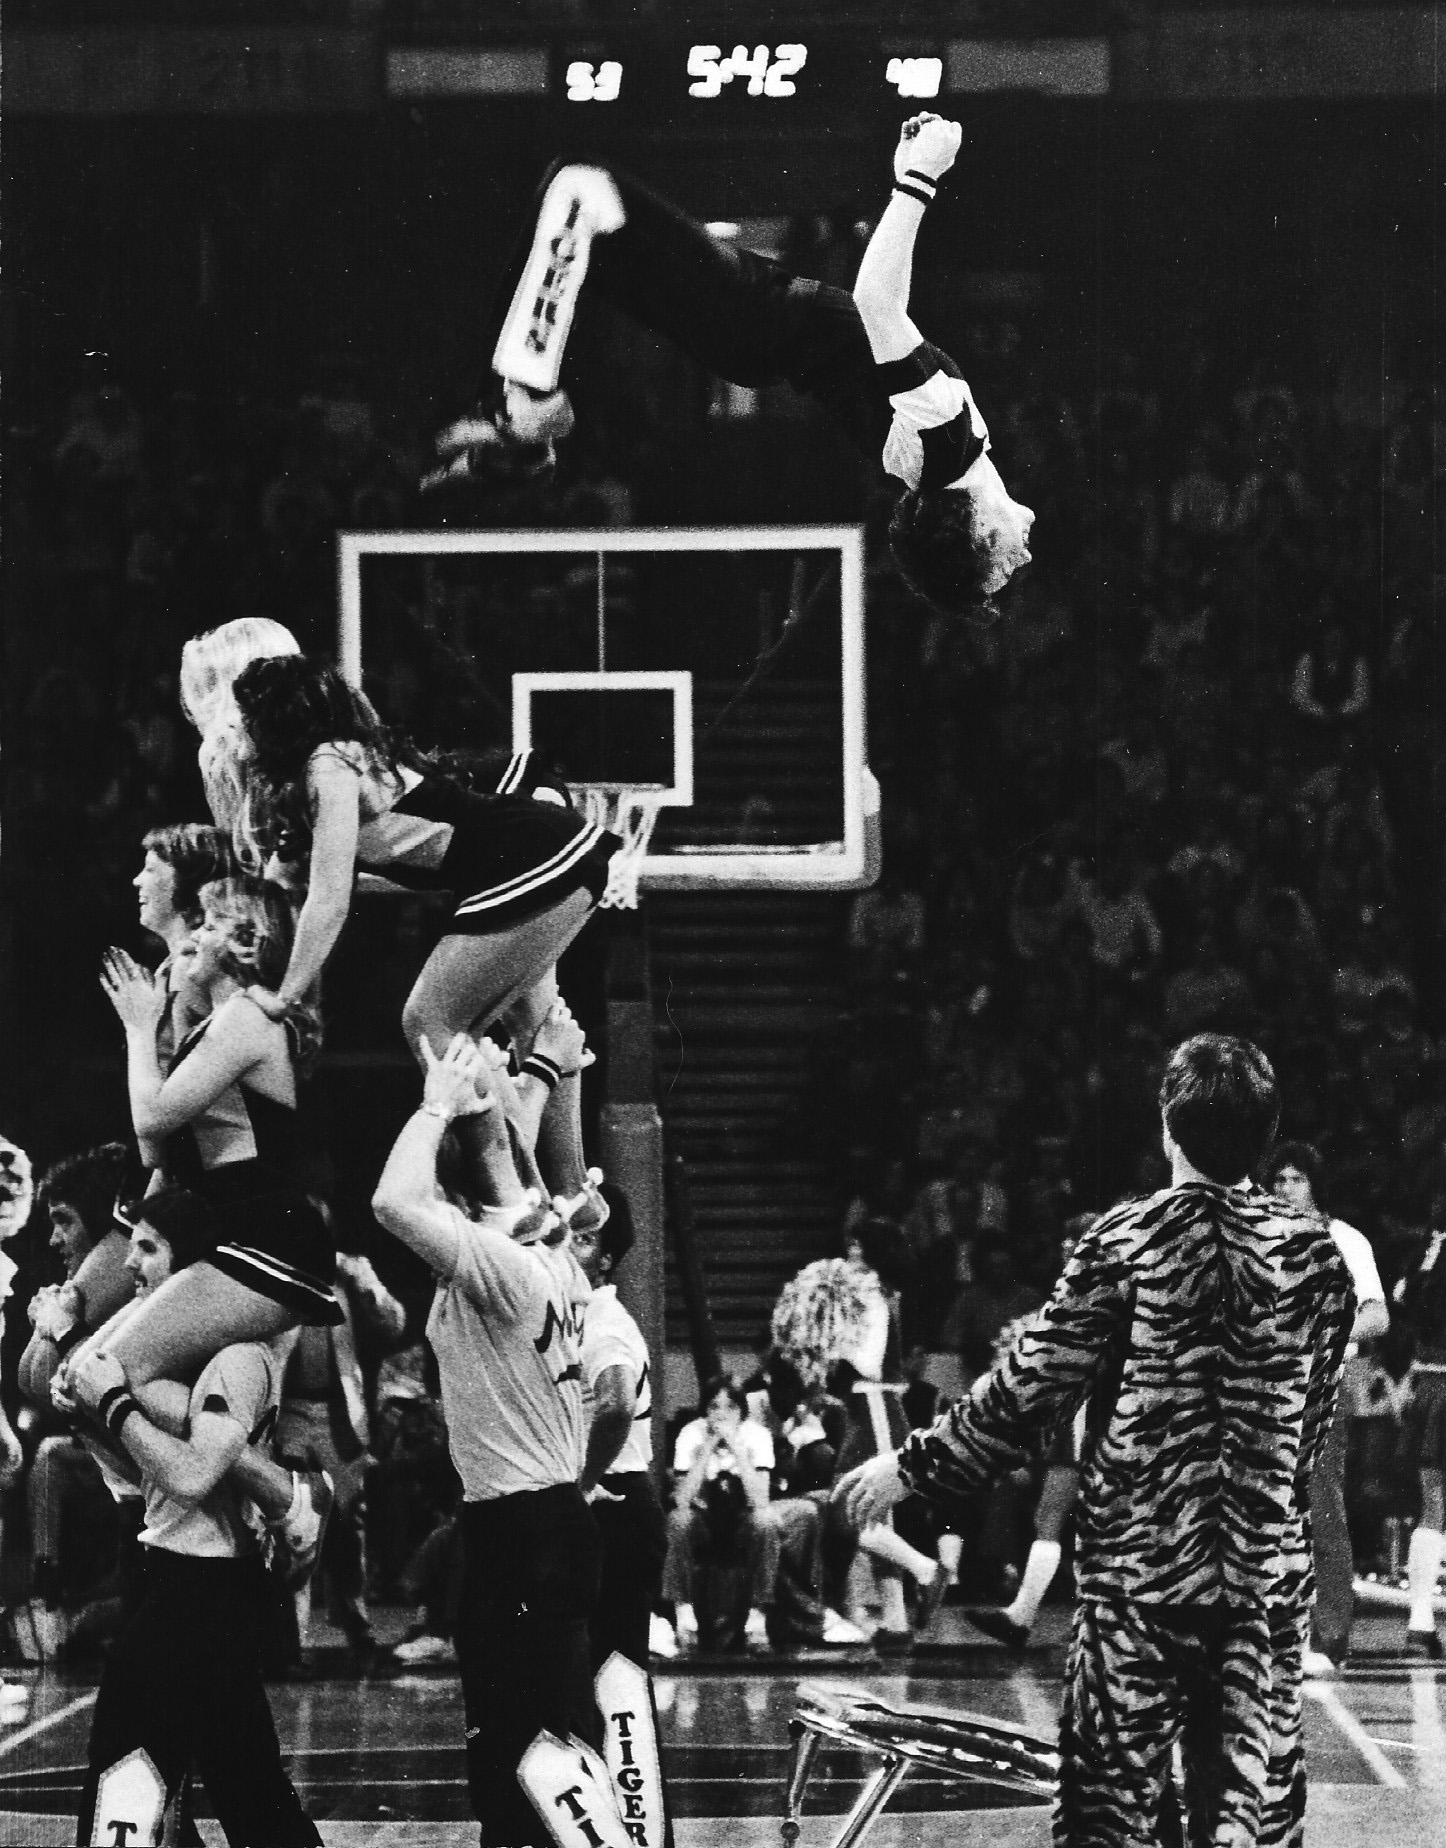 Picture of Jess Bushyhead doing a back flip at the Hearnes Center as a Mizzou Cheerleader in the late 1970s